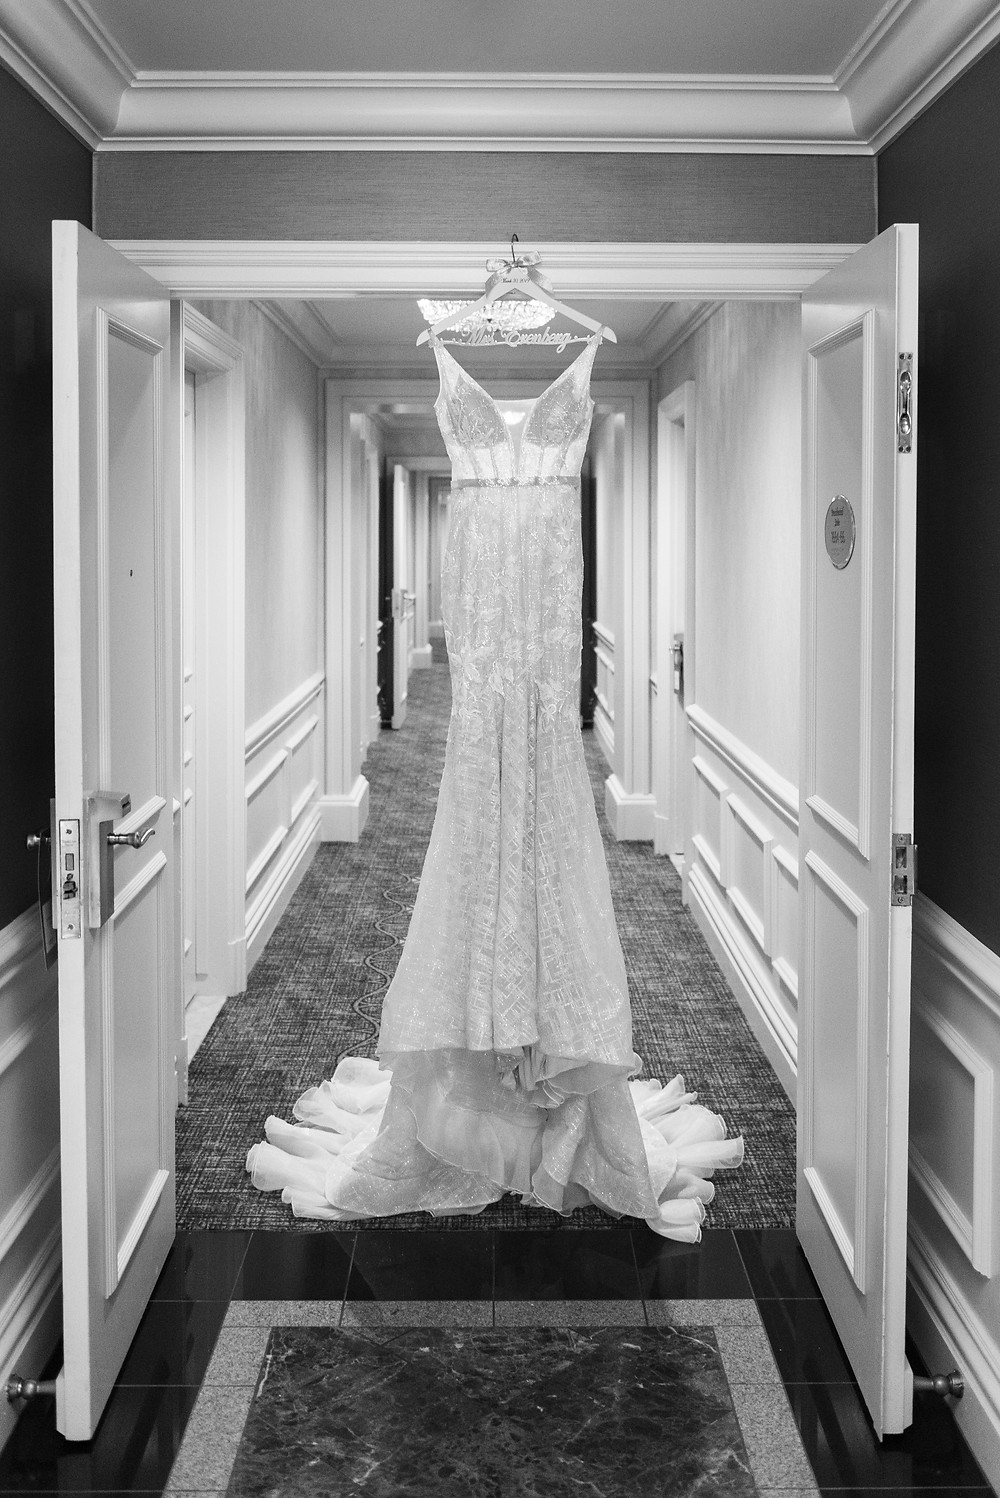 Berta dress hanging in the presidential suite of the Omni William Penn